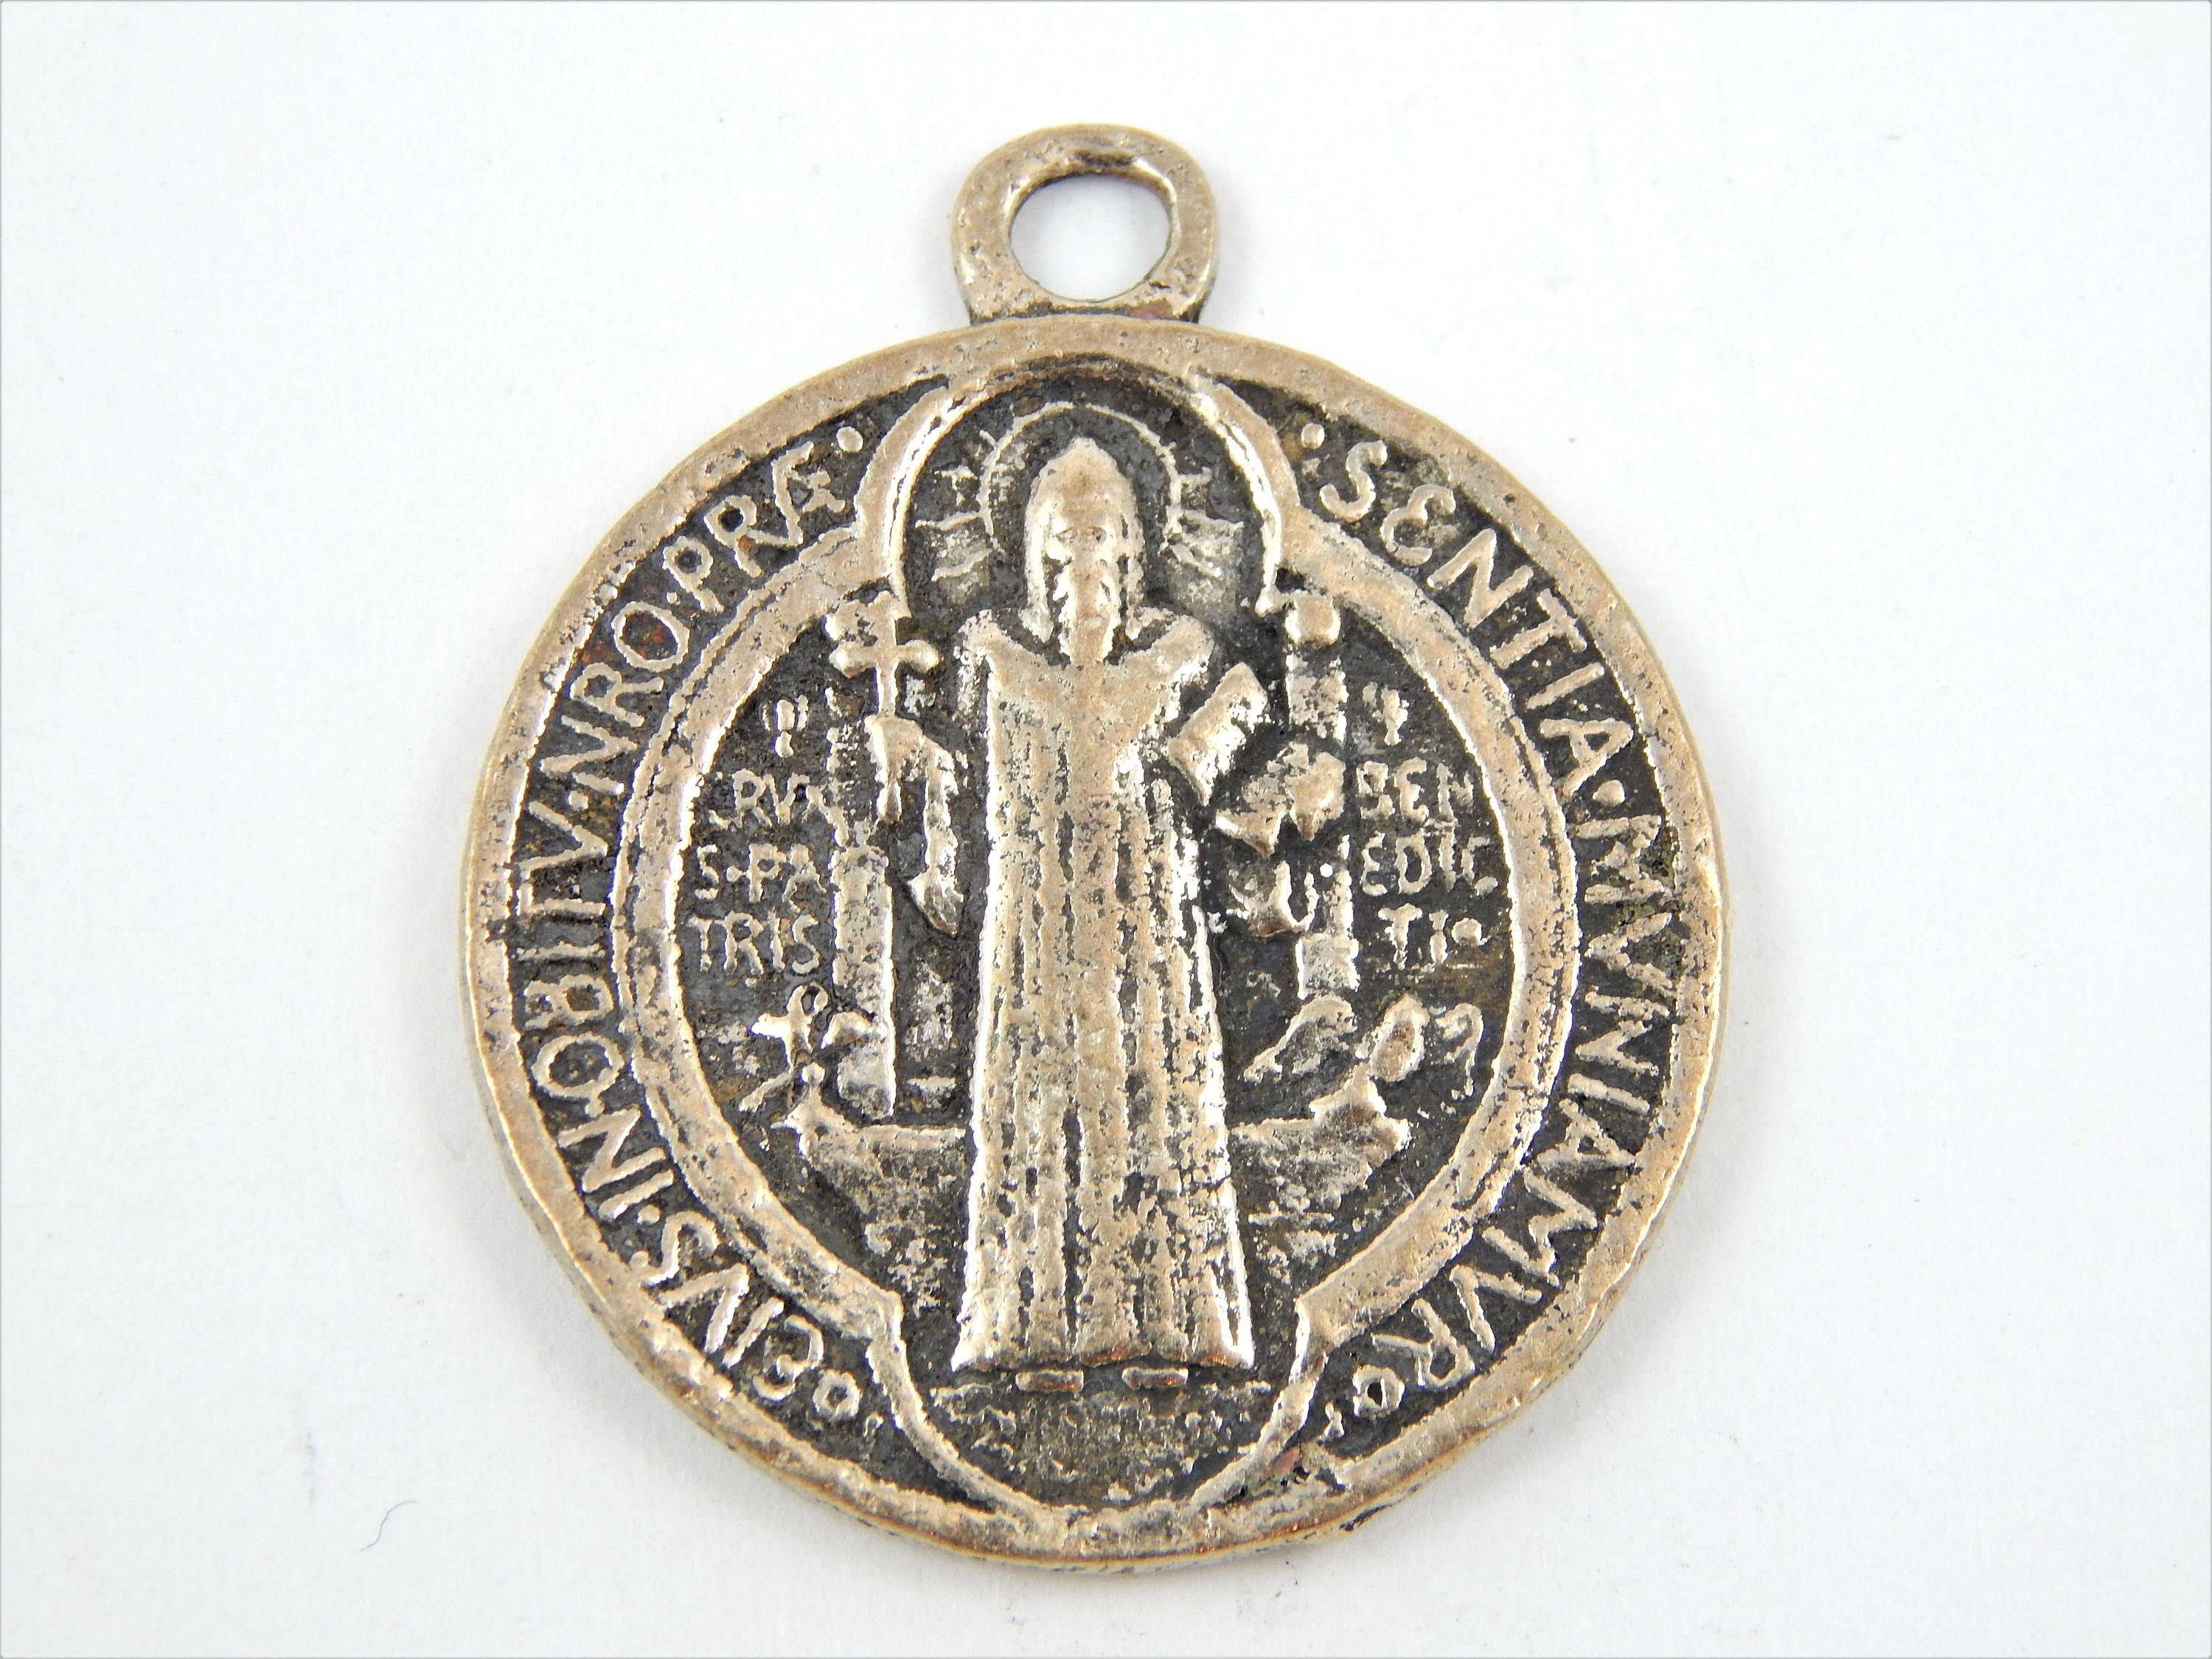 clip paraclete medallion catholic pewter designs st bookstore visor img benedict the christopher car assorted accessories